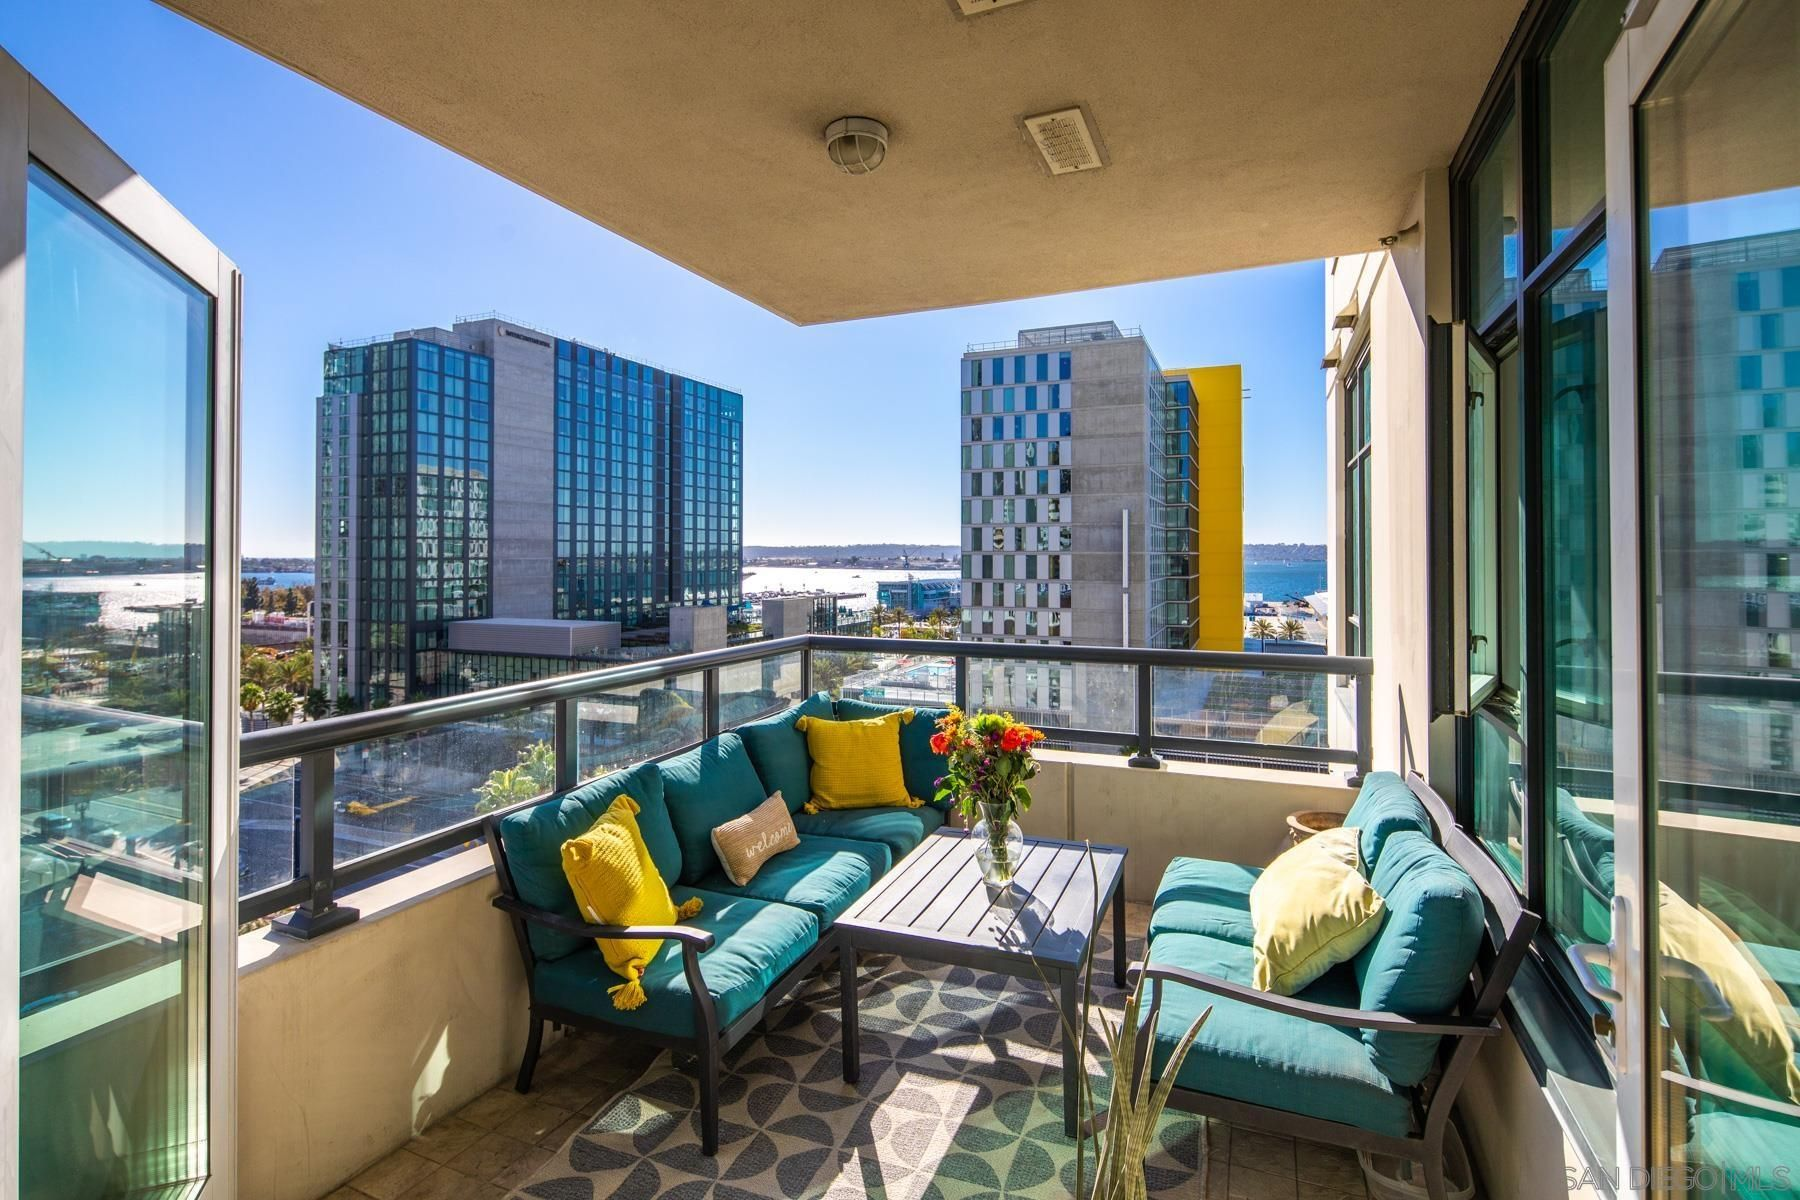 Main Photo: DOWNTOWN Condo for rent : 2 bedrooms : 1199 Pacific Hwy #1004 in San Diego